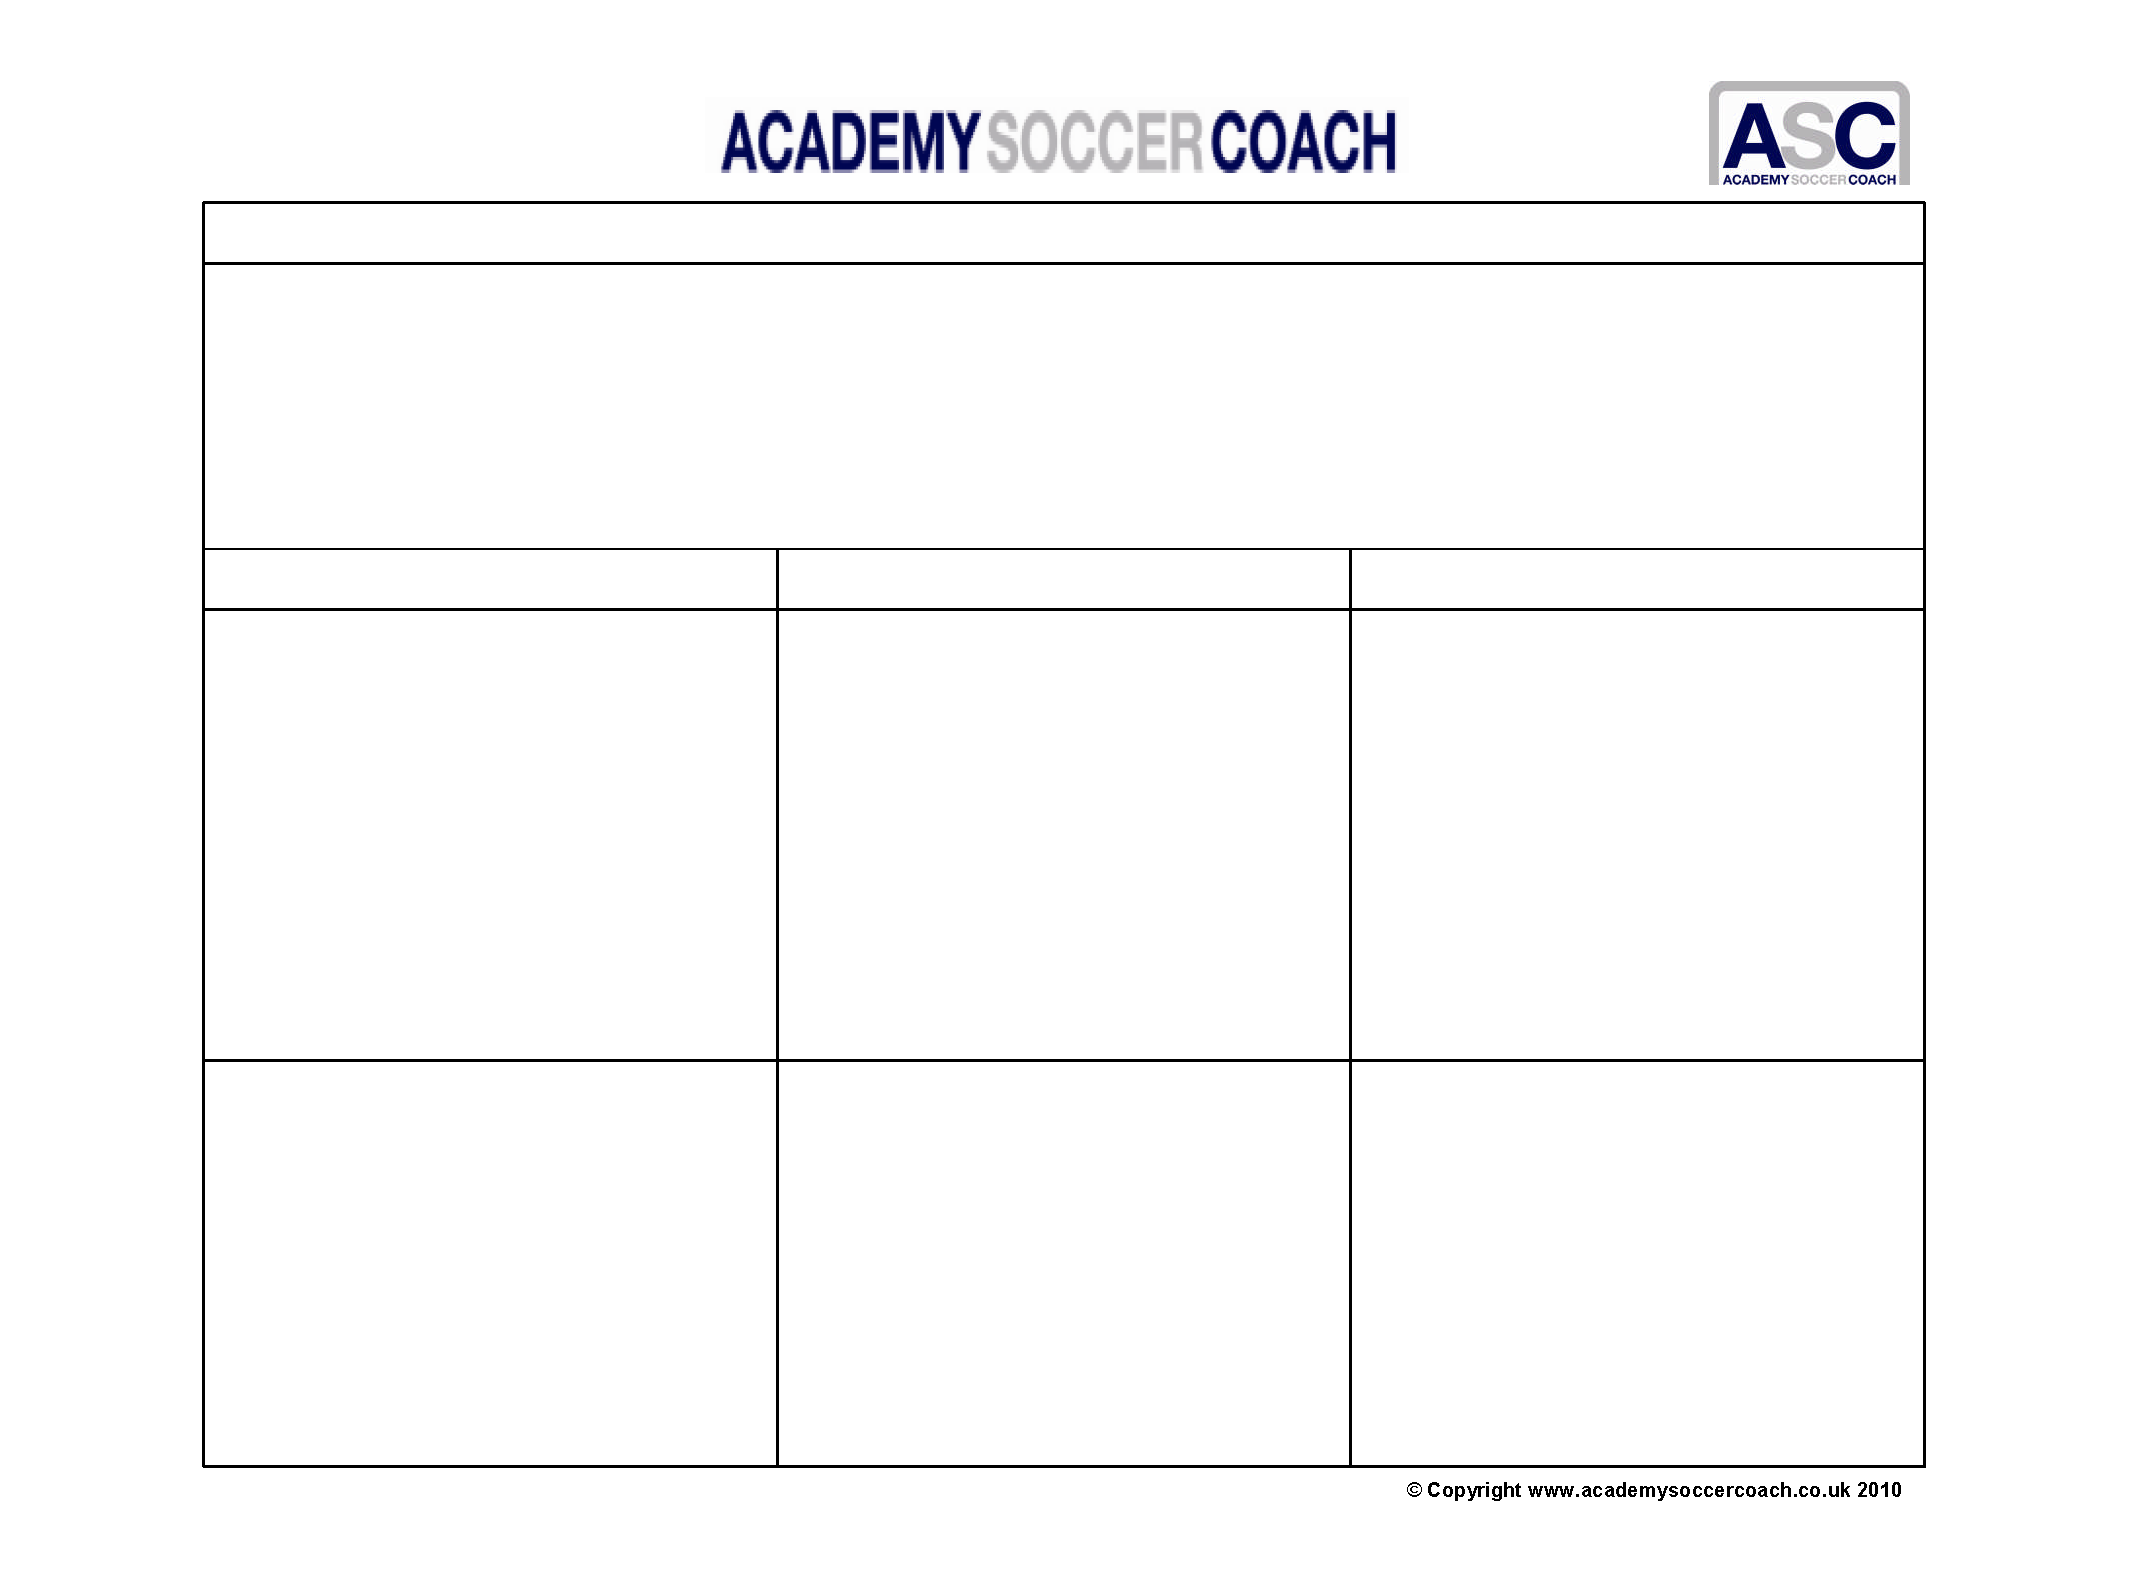 Soccer coach templates goalblockety free downloads academy soccer coach asc wajeb Choice Image